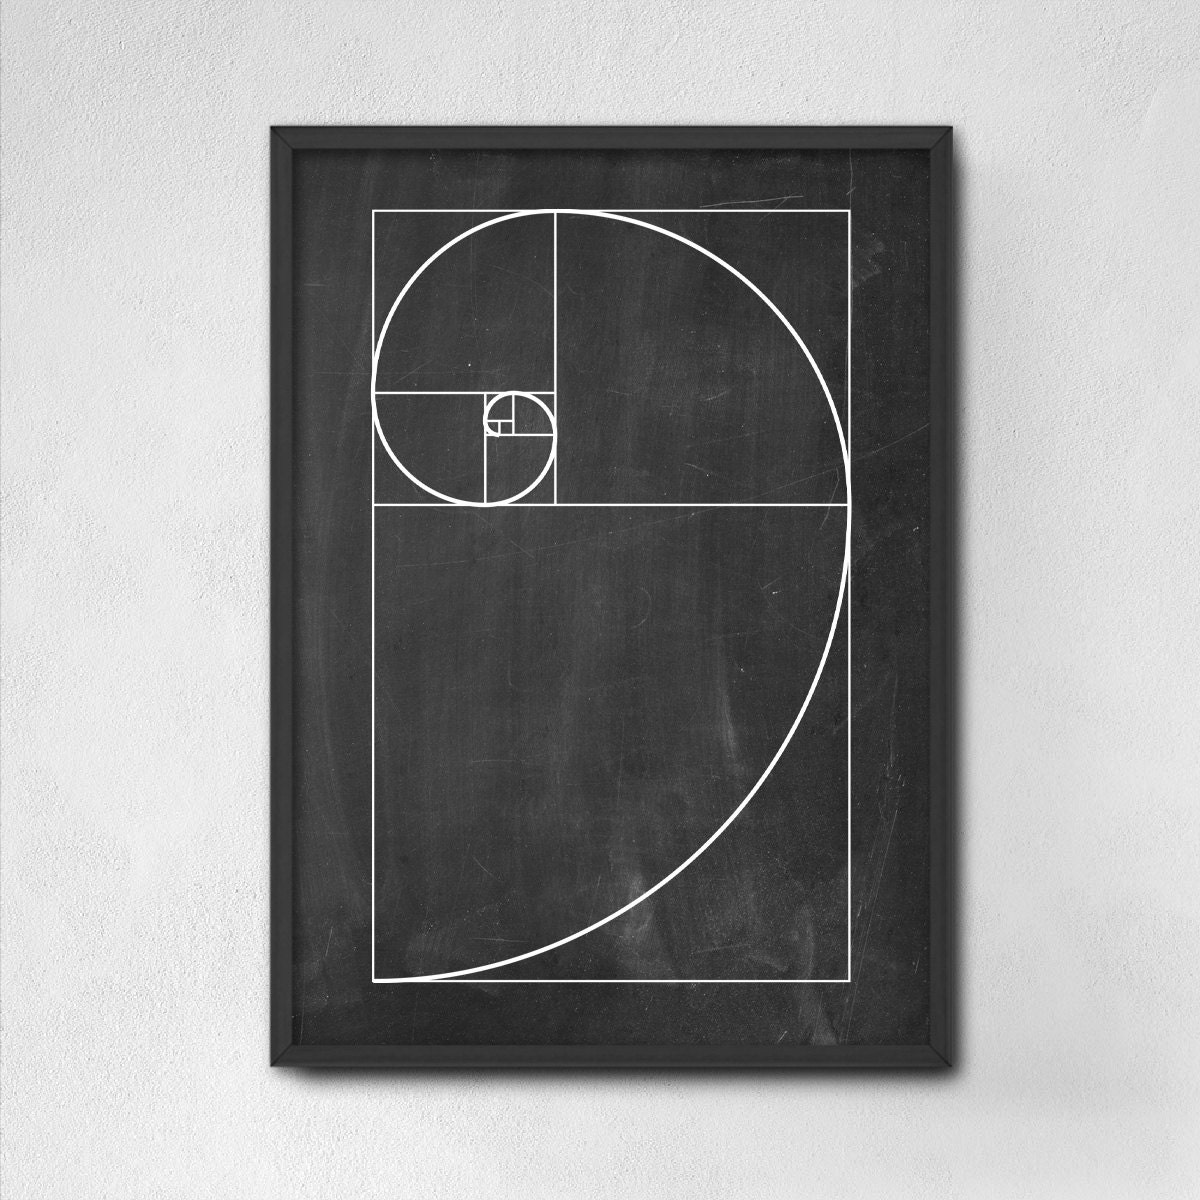 Poster design golden ratio -  Zoom